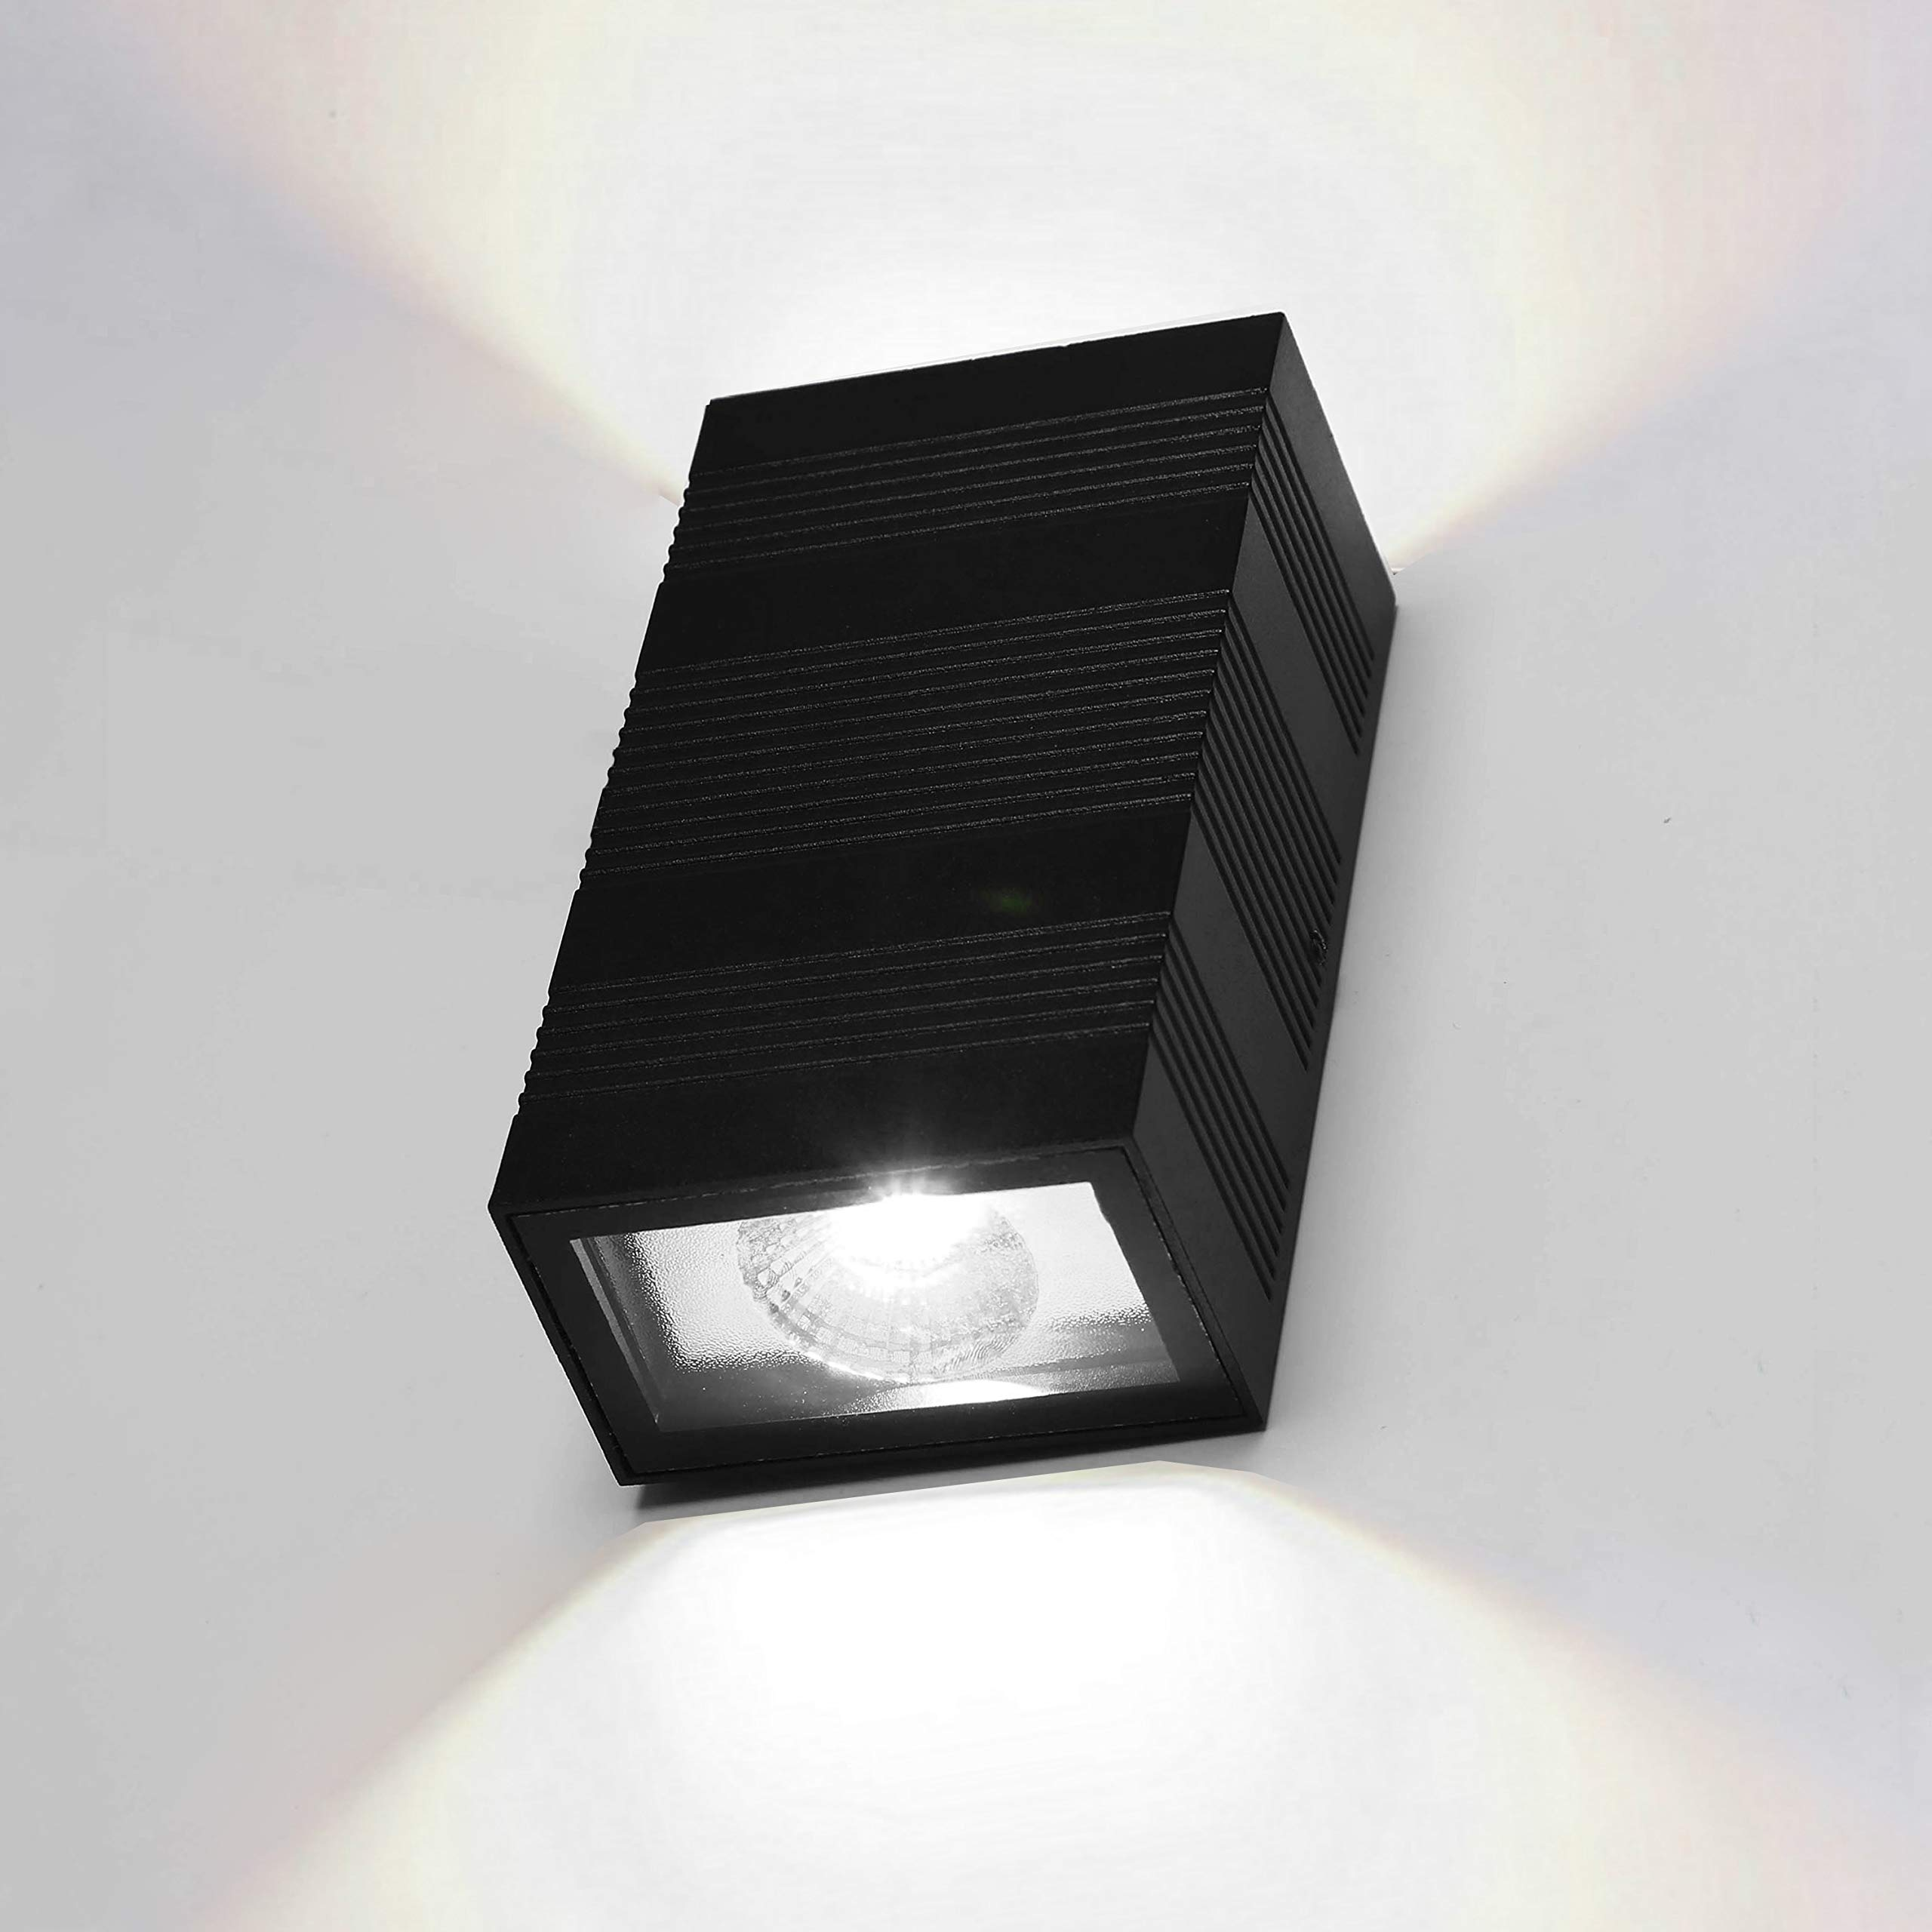 Modern Led Wall Sconce Interior Wall Light Fixtures Up and Down Lighting Lamp for Hallway, Living Room, Home 10W Aluminum Black